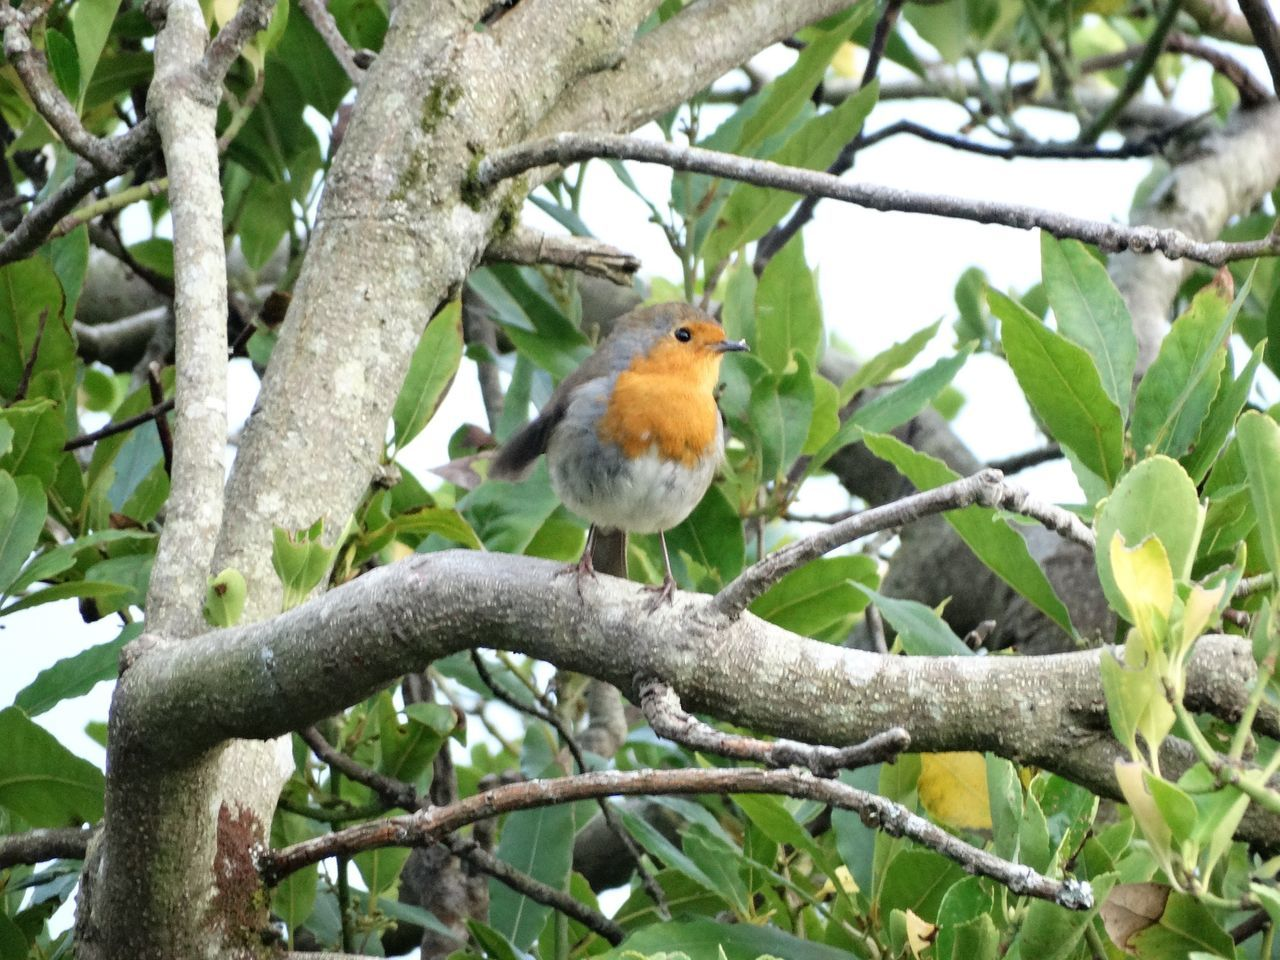 Robin on branch. Bird Branch Tree Animal Themes One Animal Perching Animal Wildlife Nature Robin Animals In The Wild Low Angle View No People Beauty In Nature Day Outdoors Birds Animals Beauty In Nature Trees Bird In A Tree Scenics